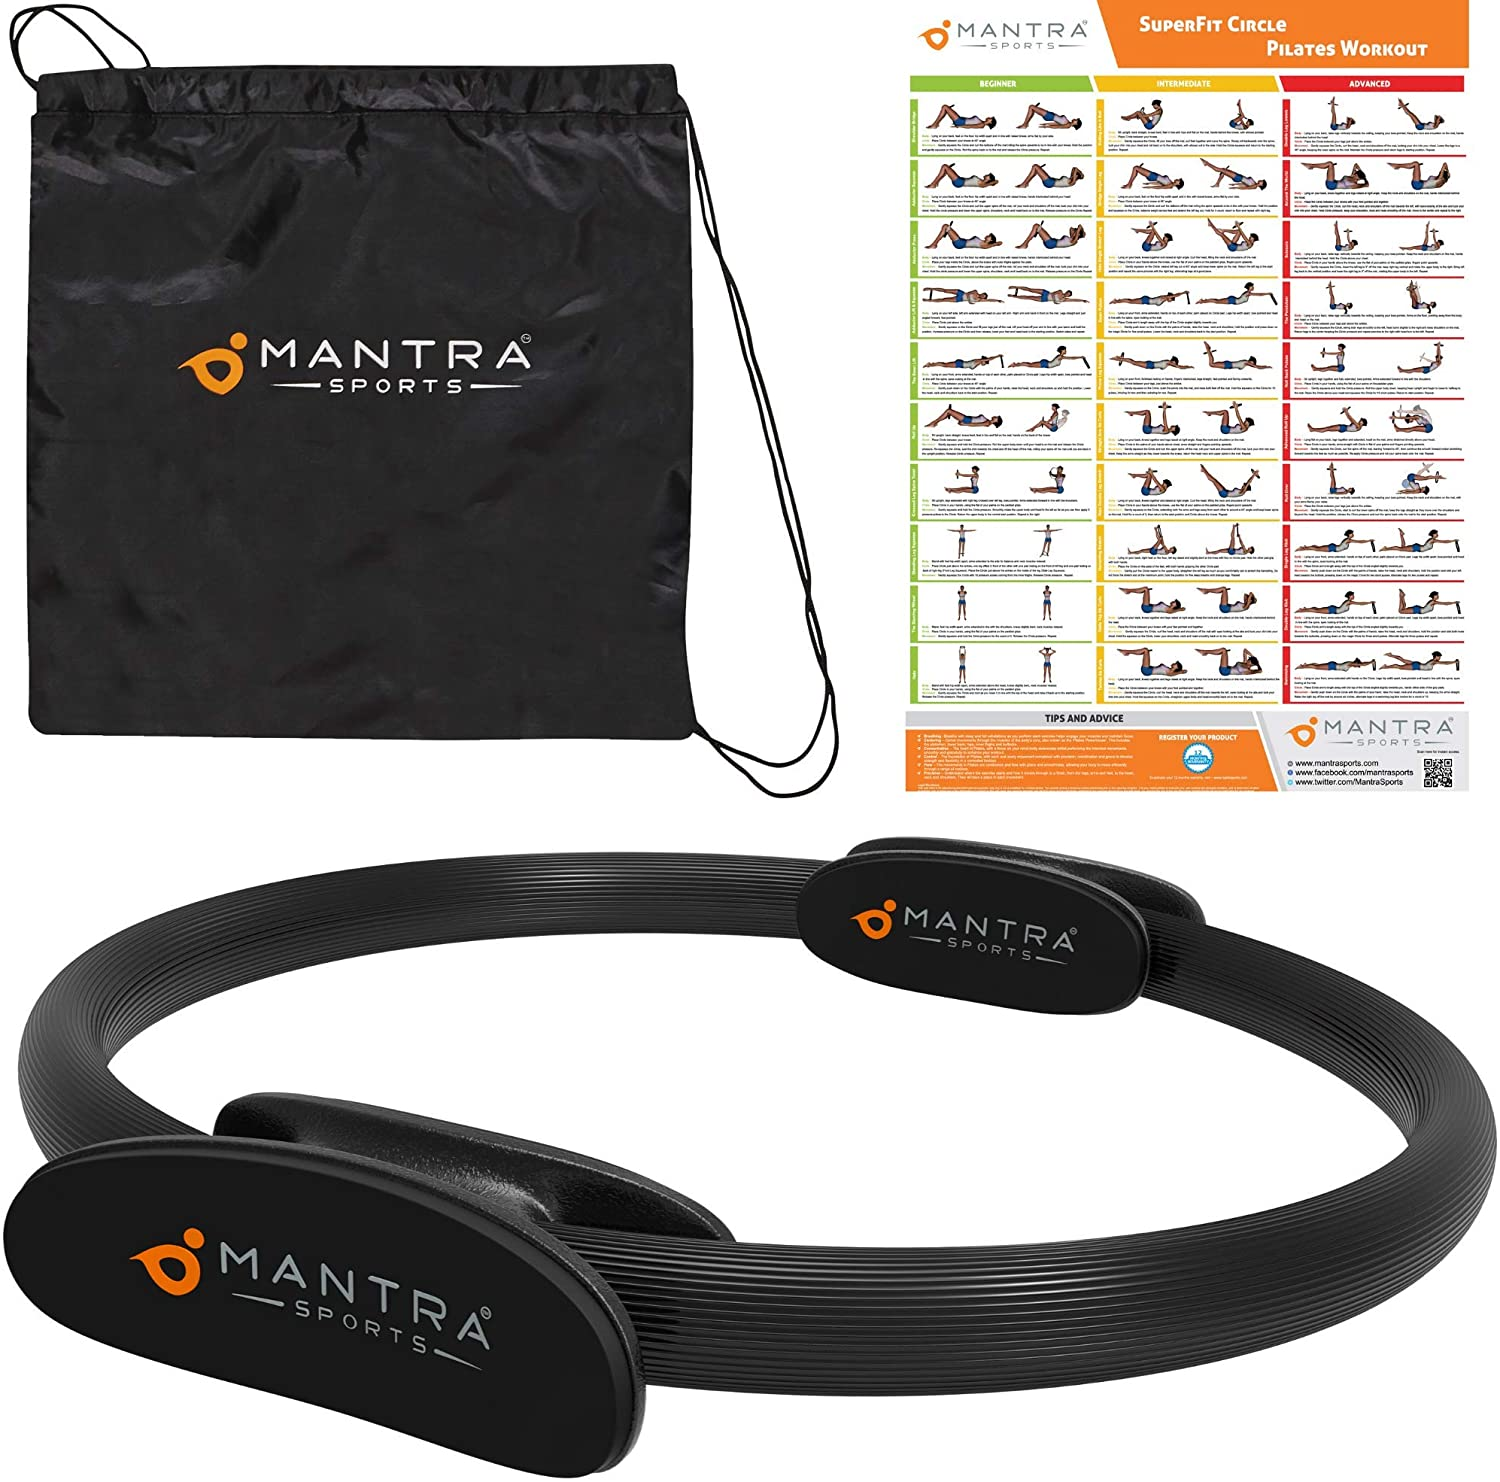 MANTRA SPORTS Pilates Ring Magic Fitness Circle - Exercise Resistance Equipment for Toning & Sculpting Inner & Outer Thighs-Improve Core Power Strength, Flexibility & Posture-Workout Poster & Bag